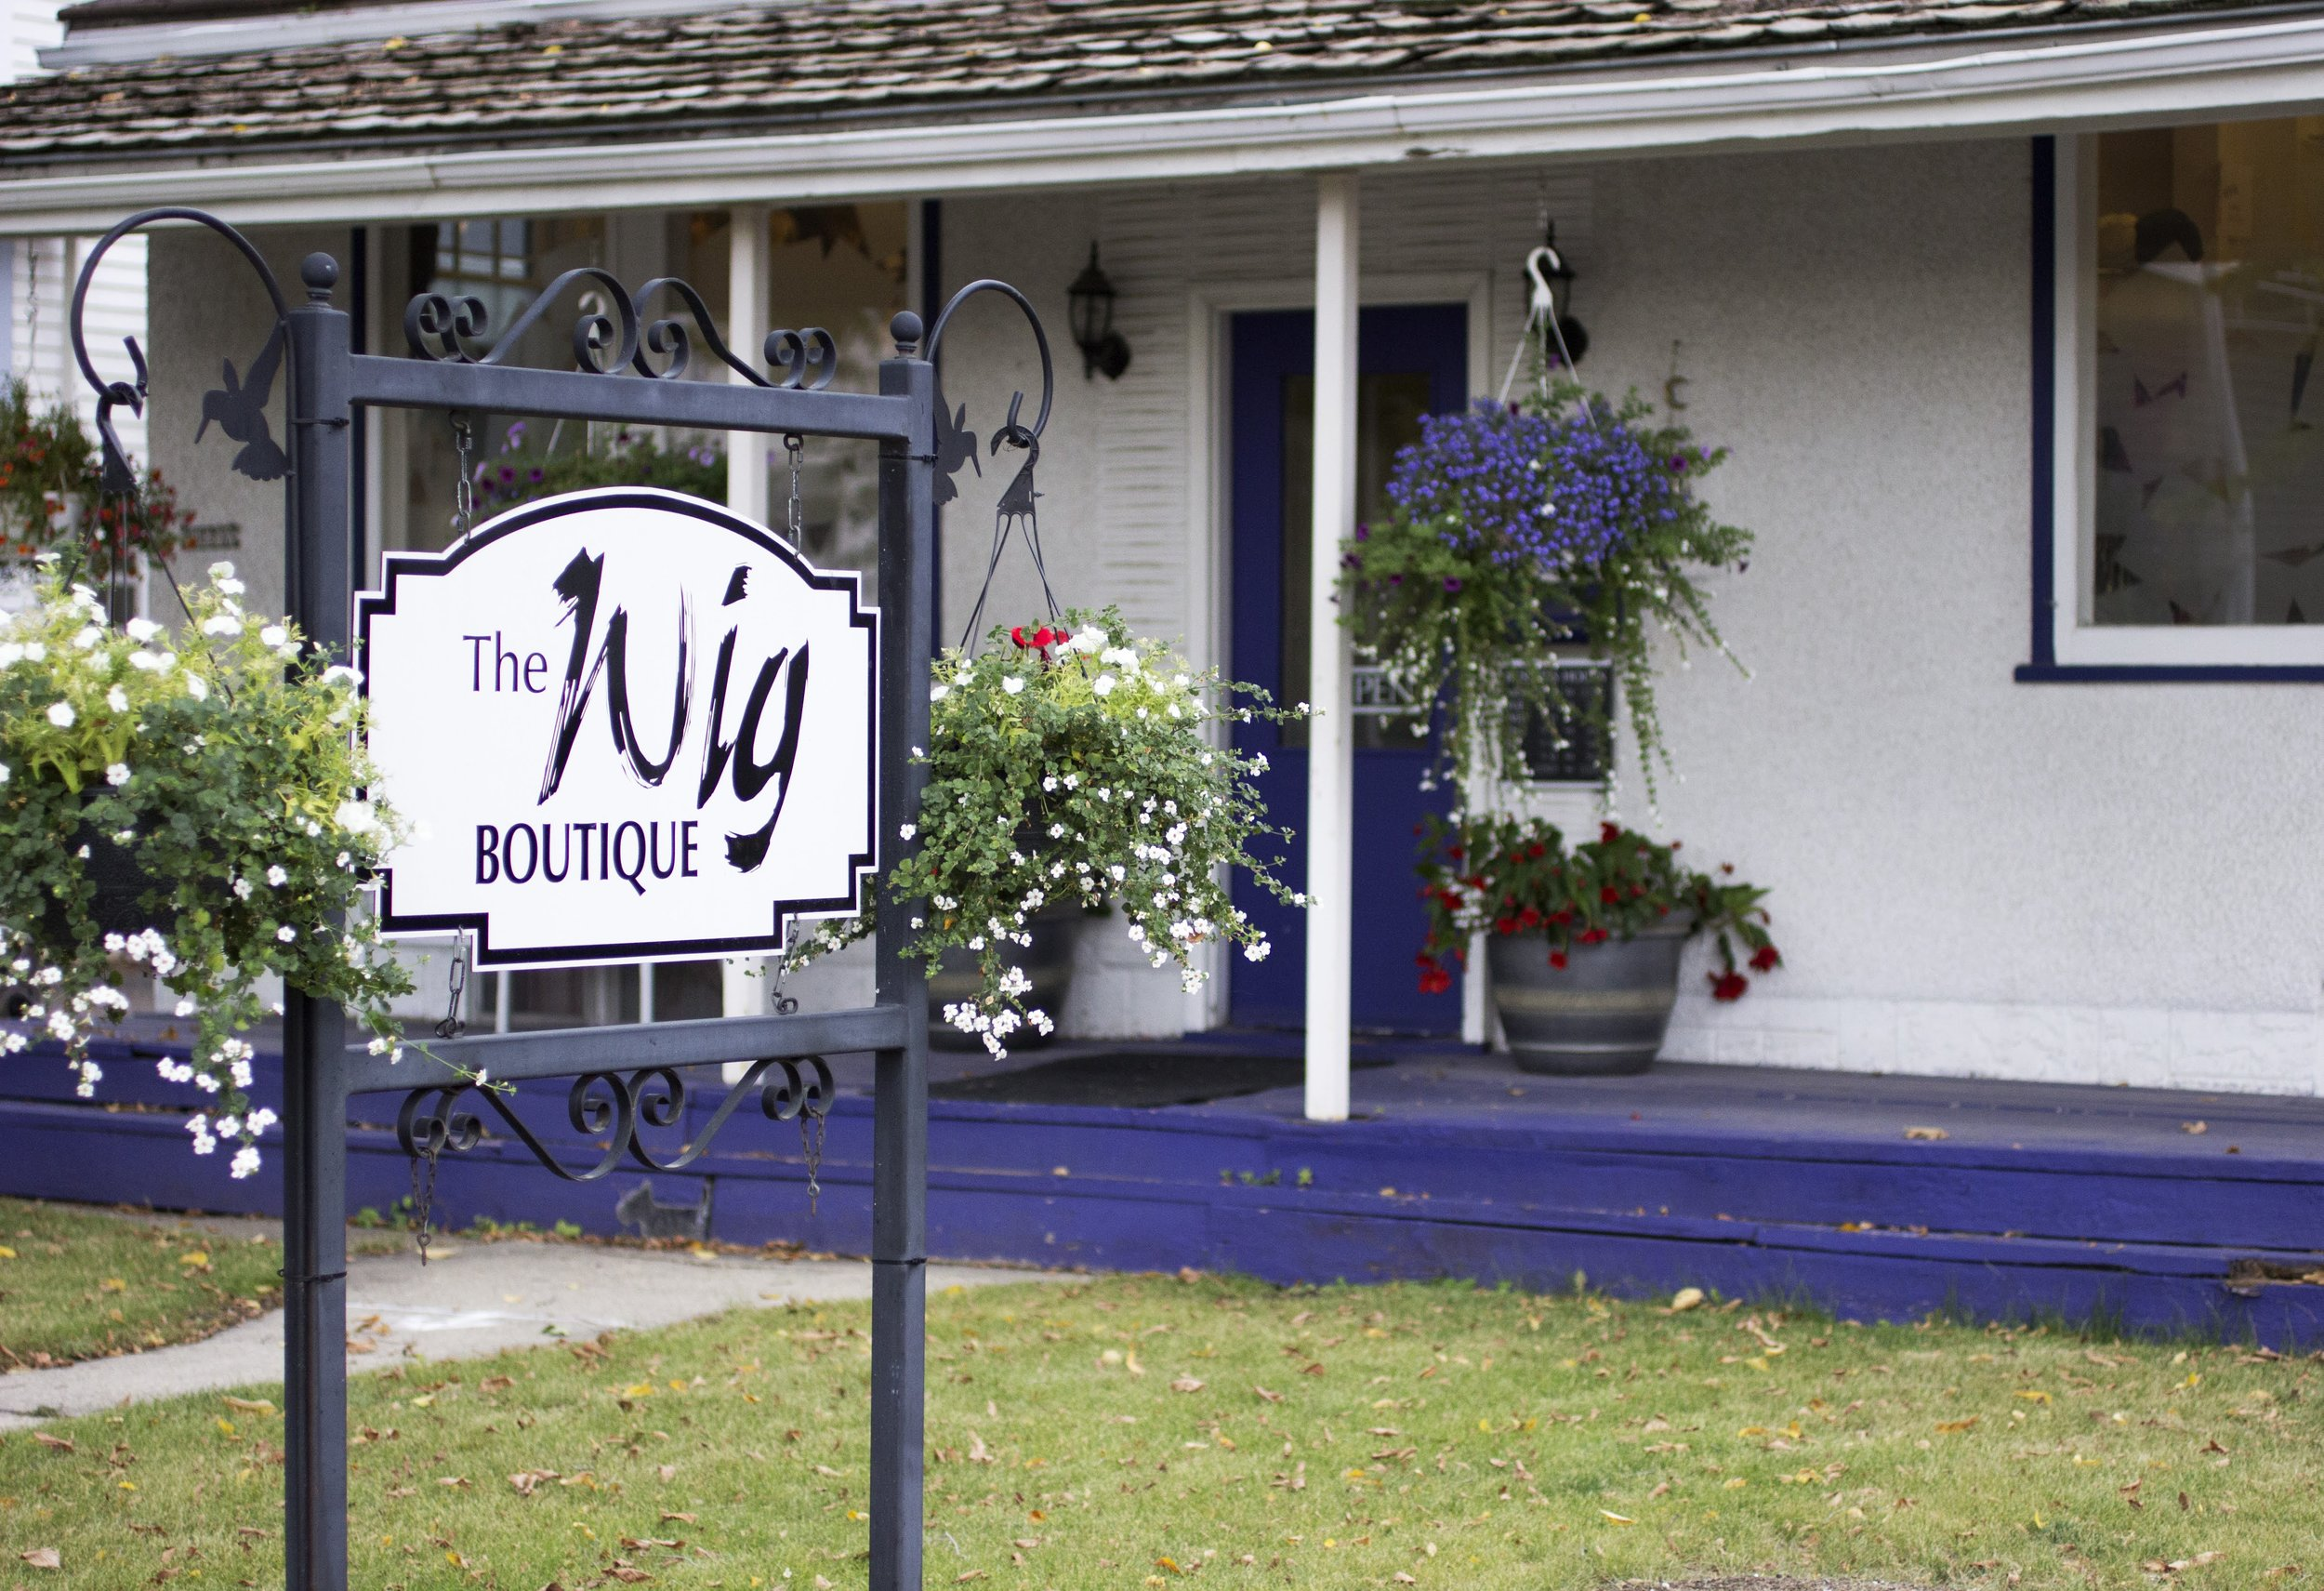 The outside of the shop. The Wig Boutique is inside a white house with a purple porch and door. There is a sign on the front yard.